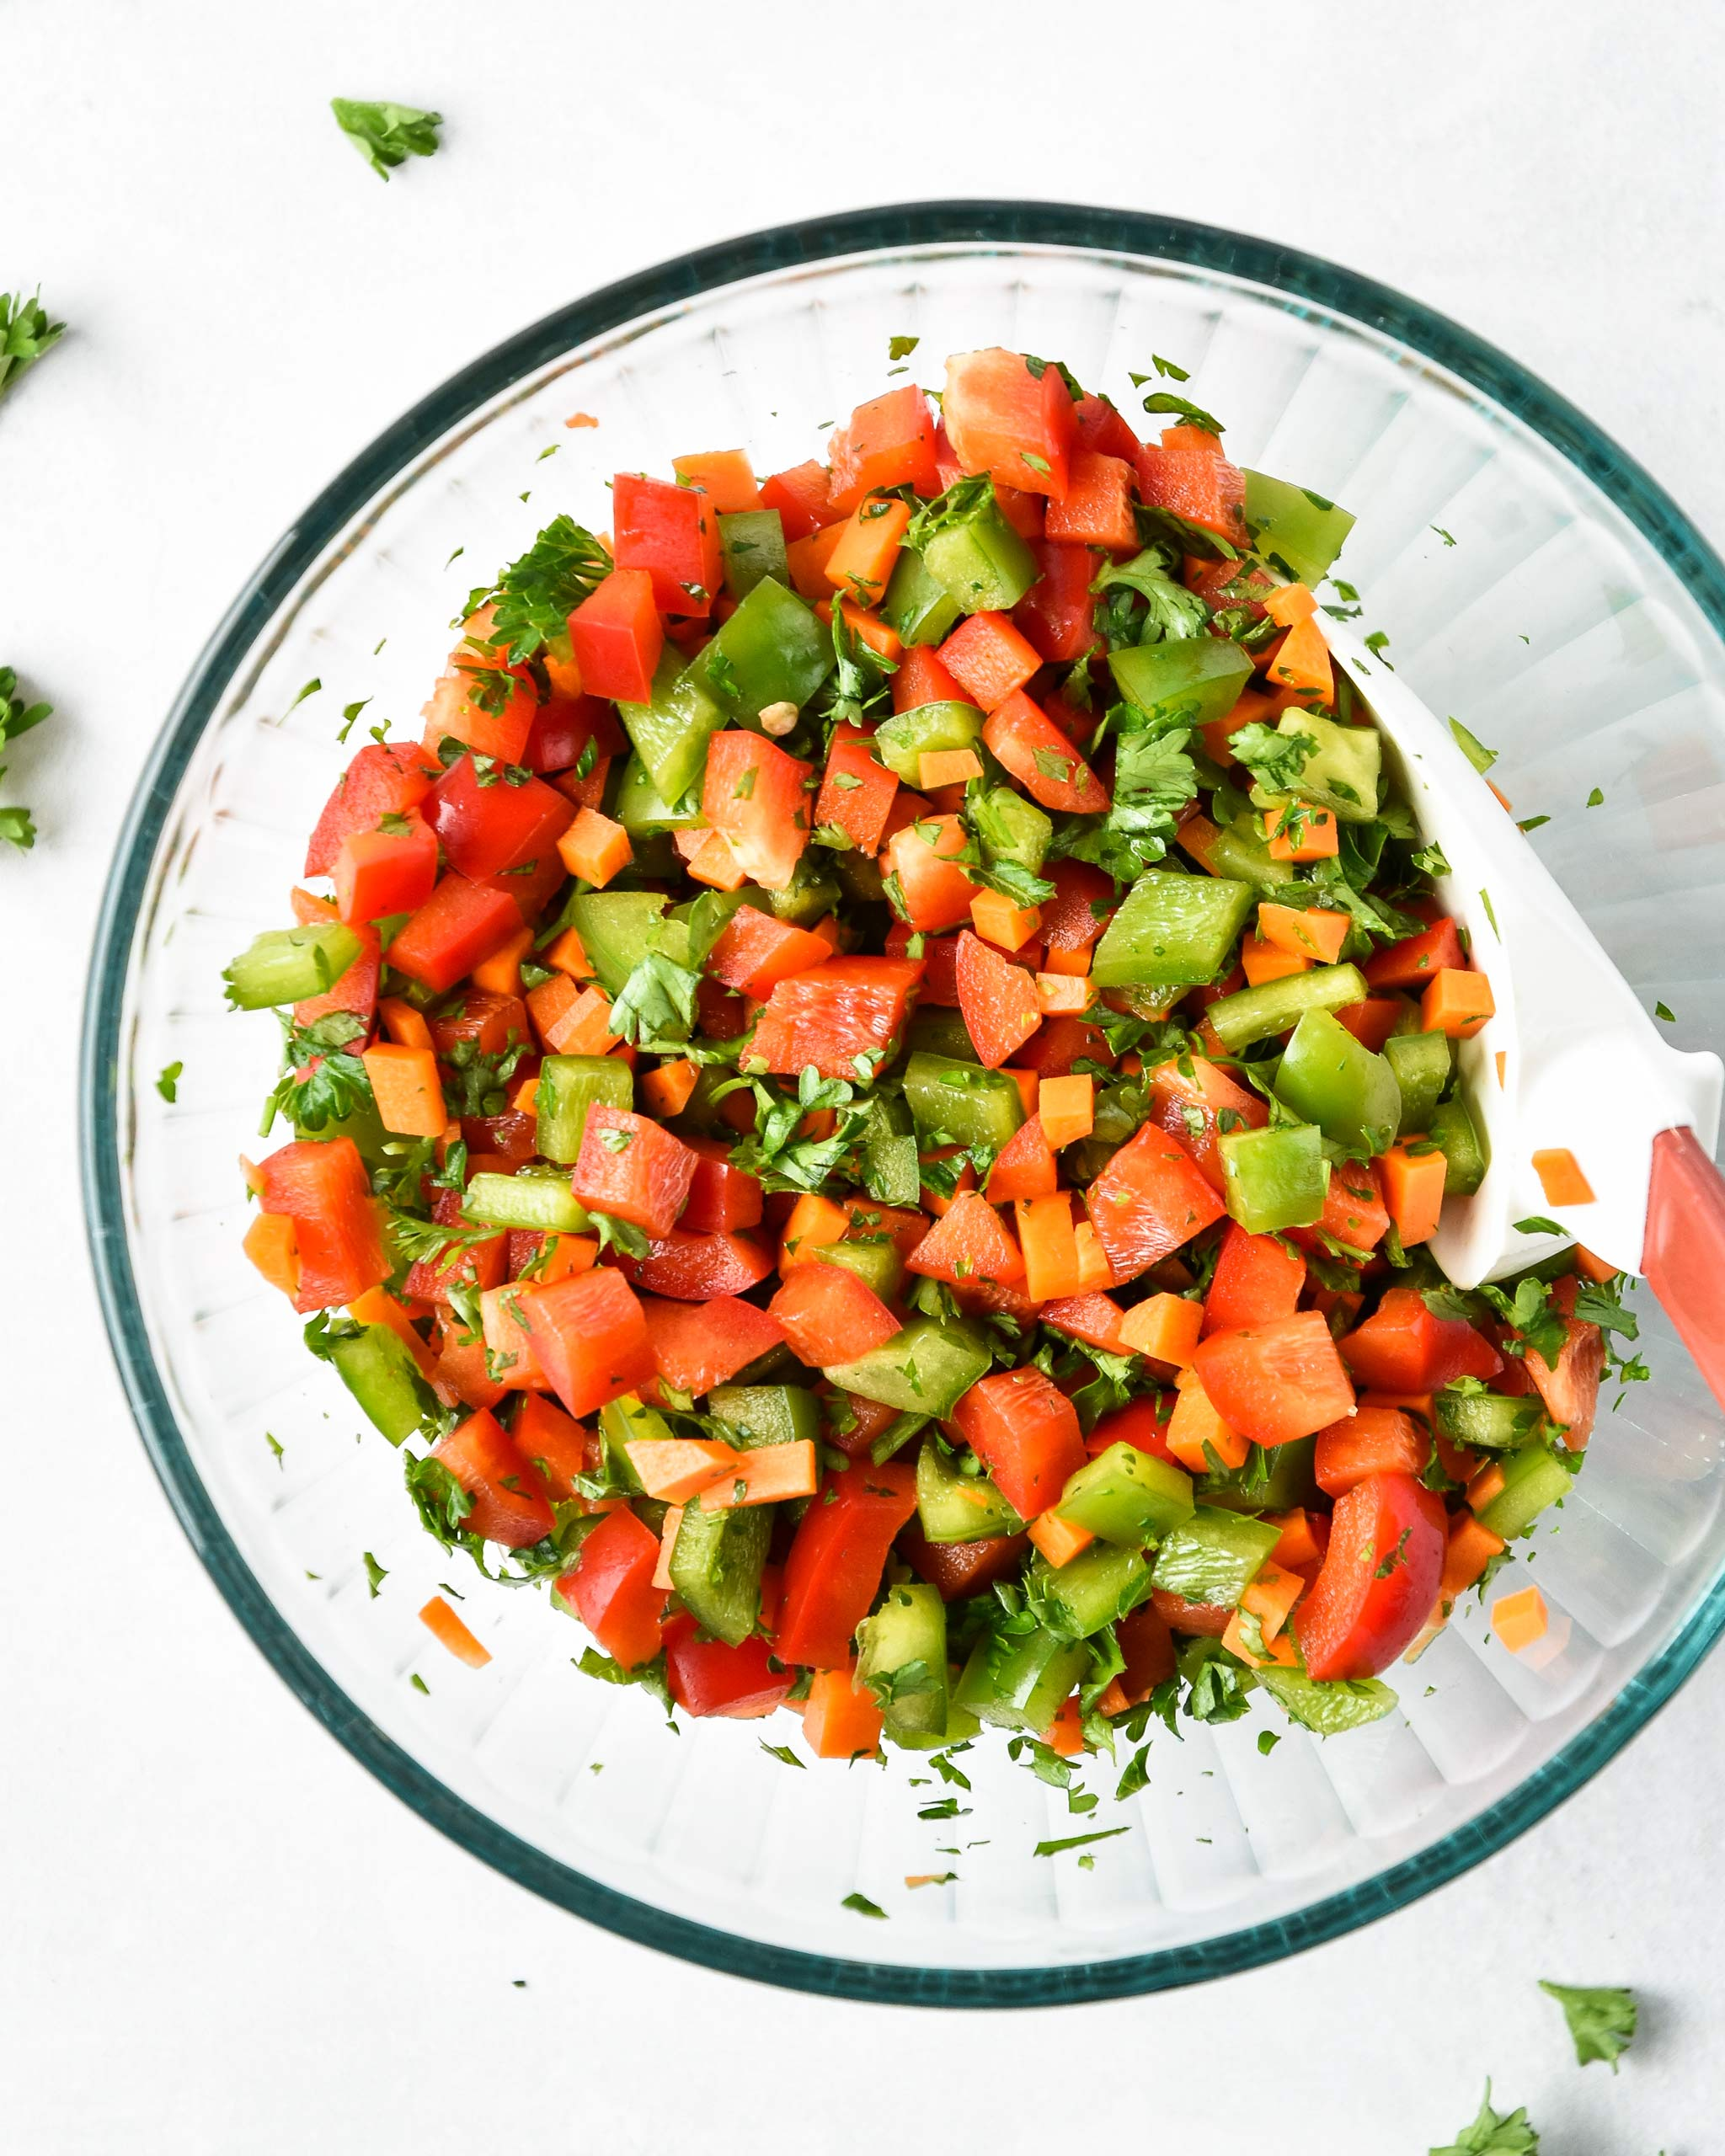 everyday vegetable confetti mixed up in a bowl